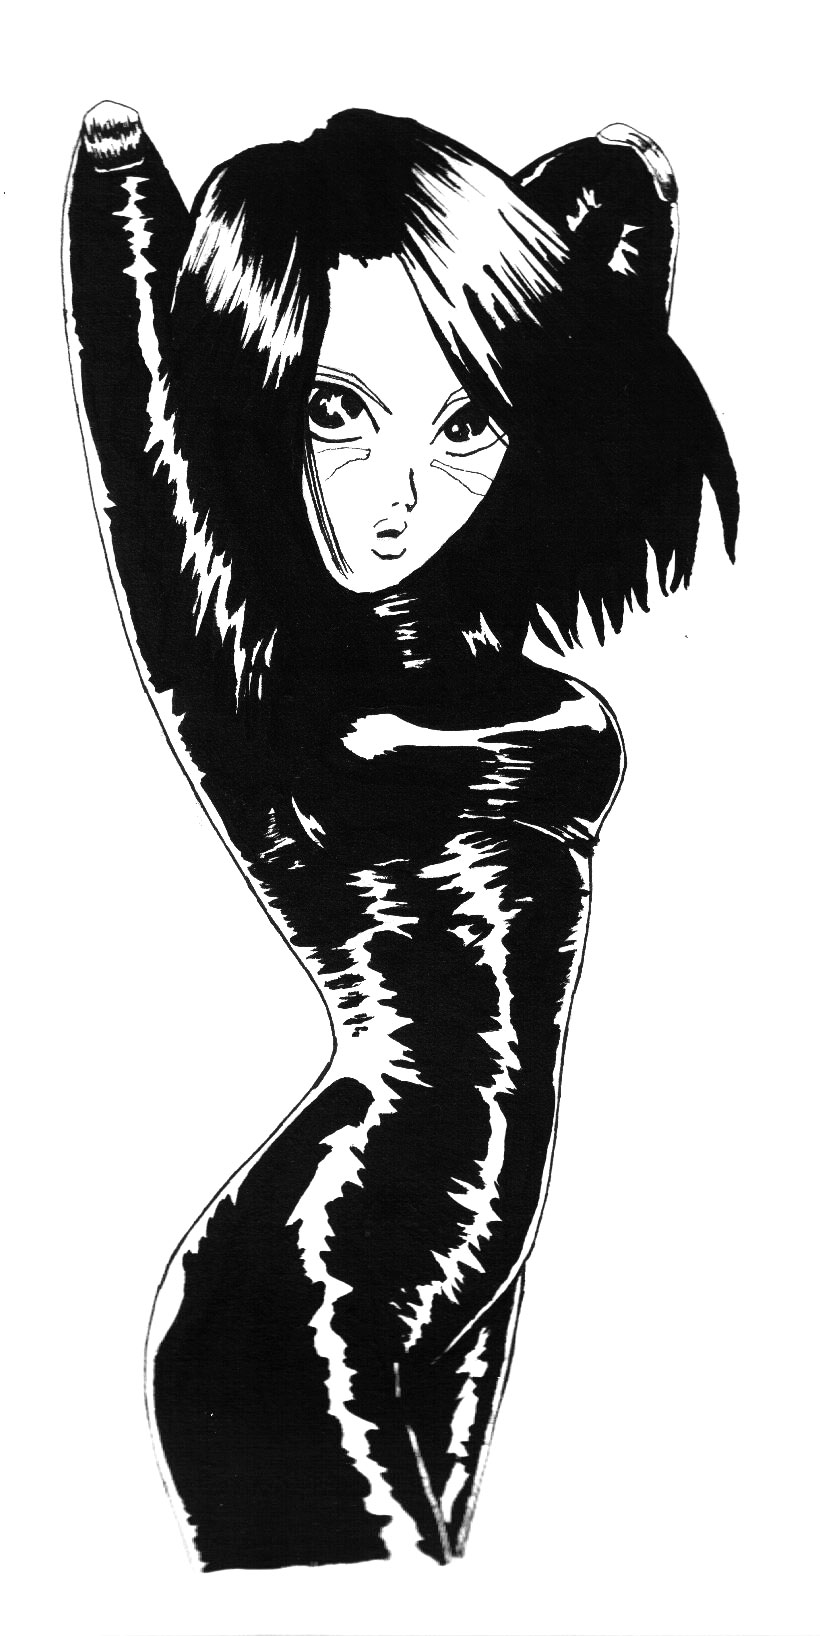 Gally Battle Angel Alita by Picmeo